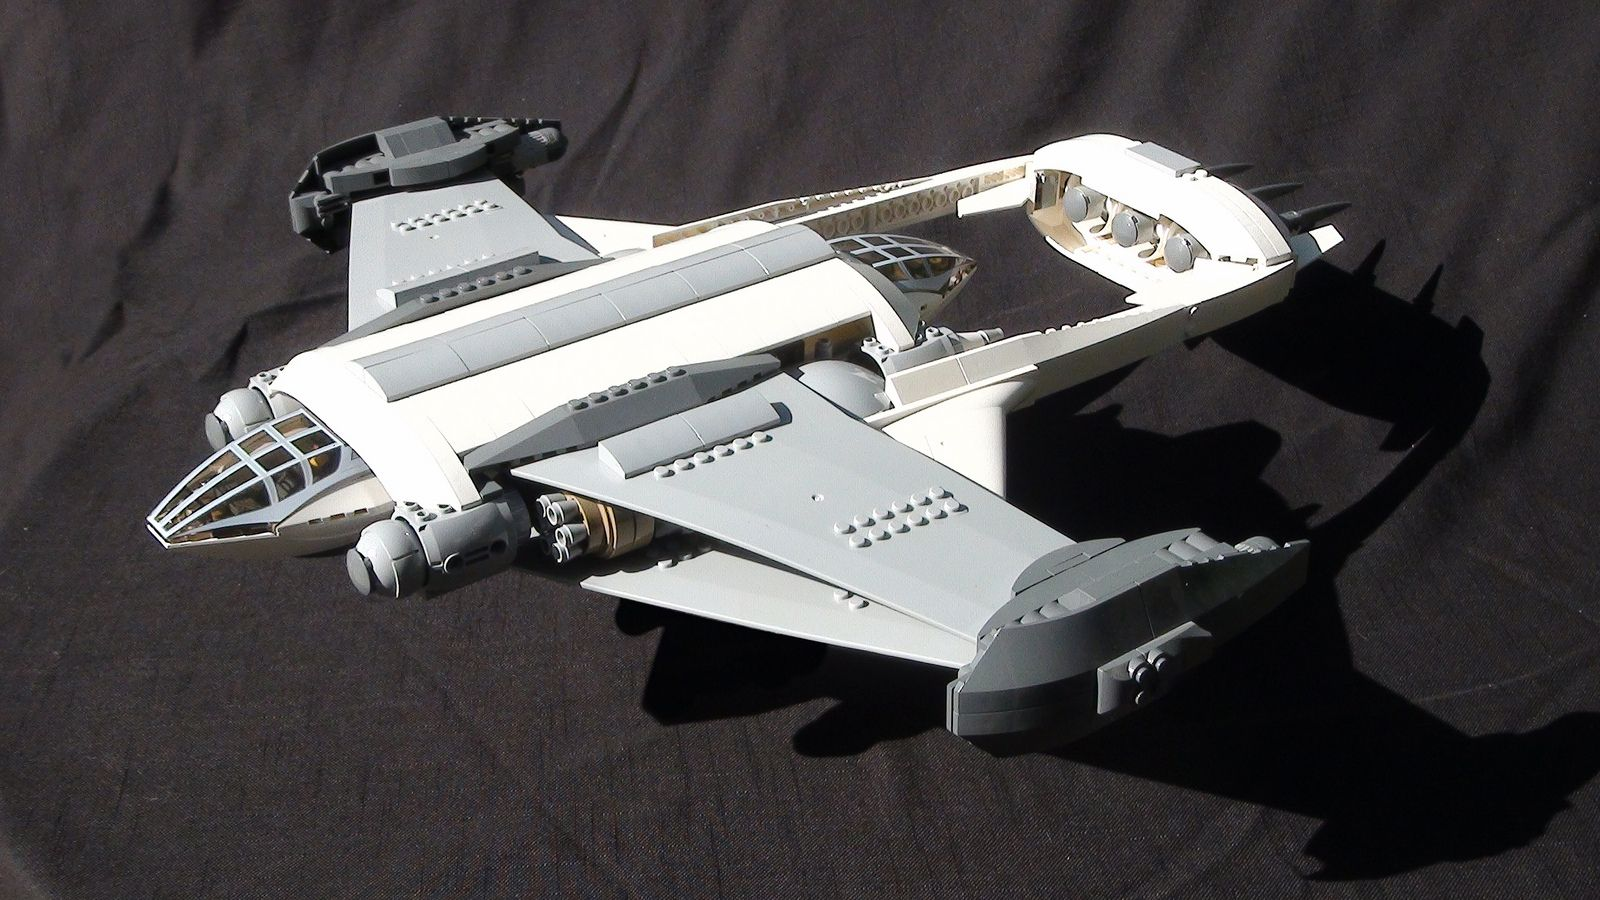 Manta Wing 01 Lego Spaceship Lego Ship Space Engineers Ships Design